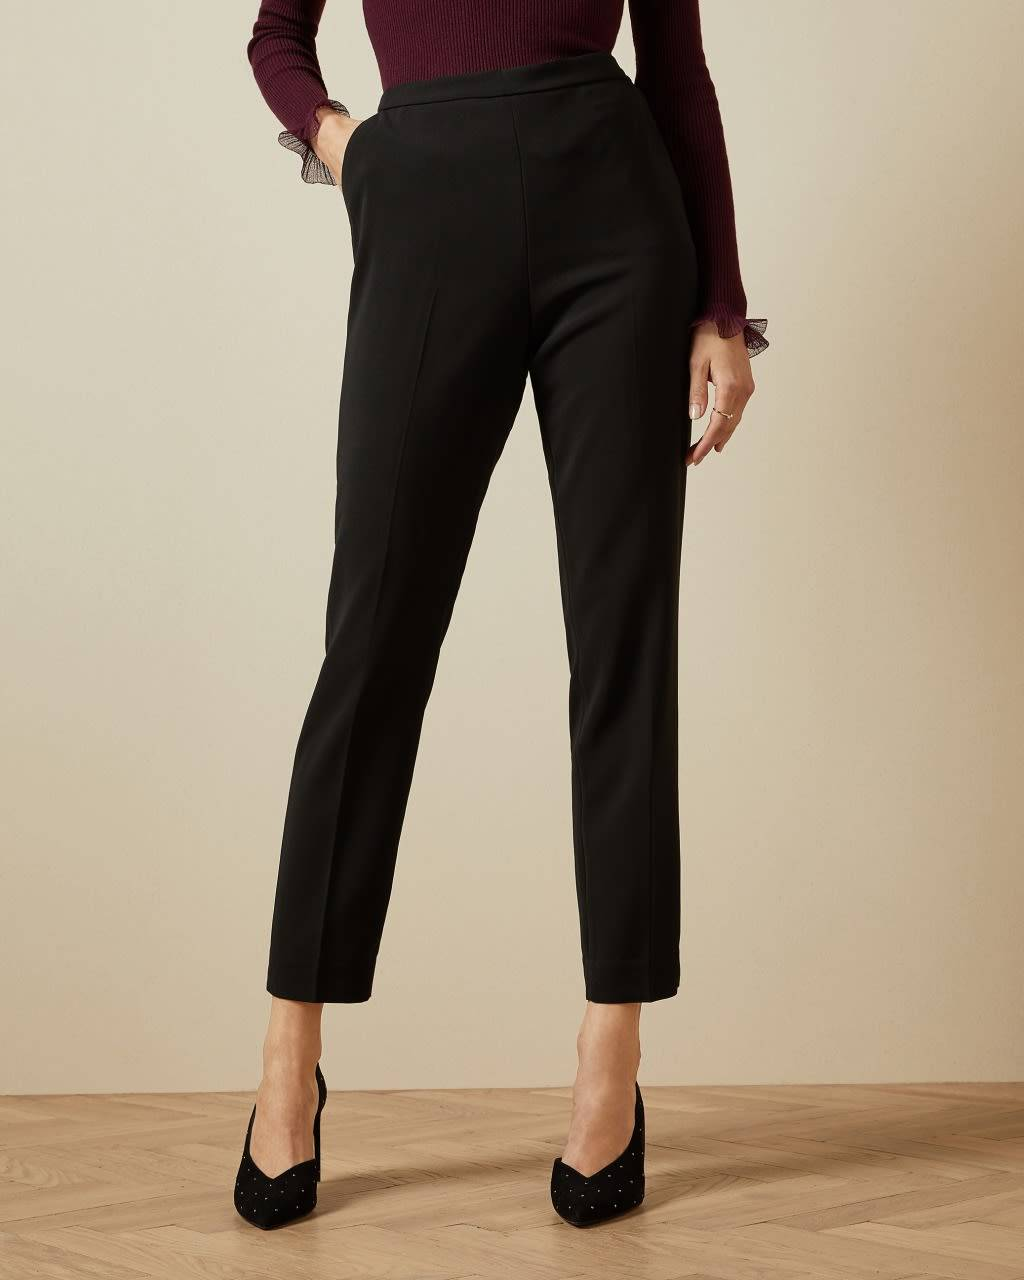 Ted Baker Angular Tailored Trousers  - Black - Size:  5 (UK 16)